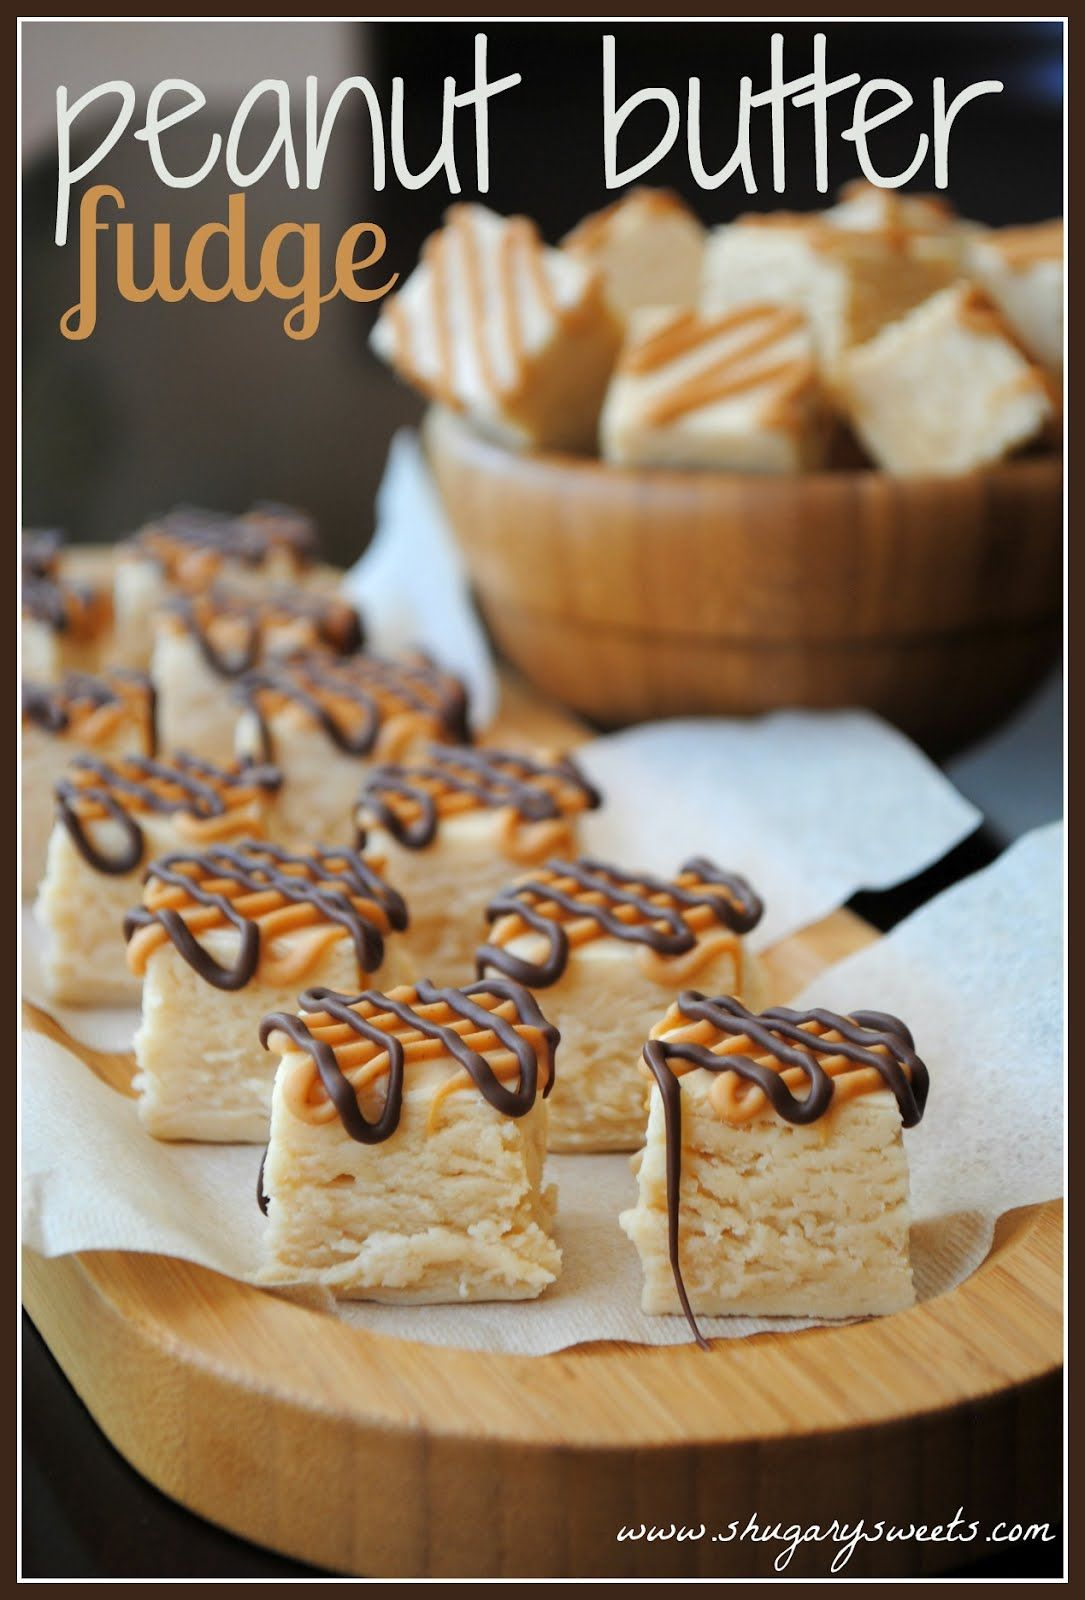 Peanut butter fudge | Sweet Treats | Pinterest